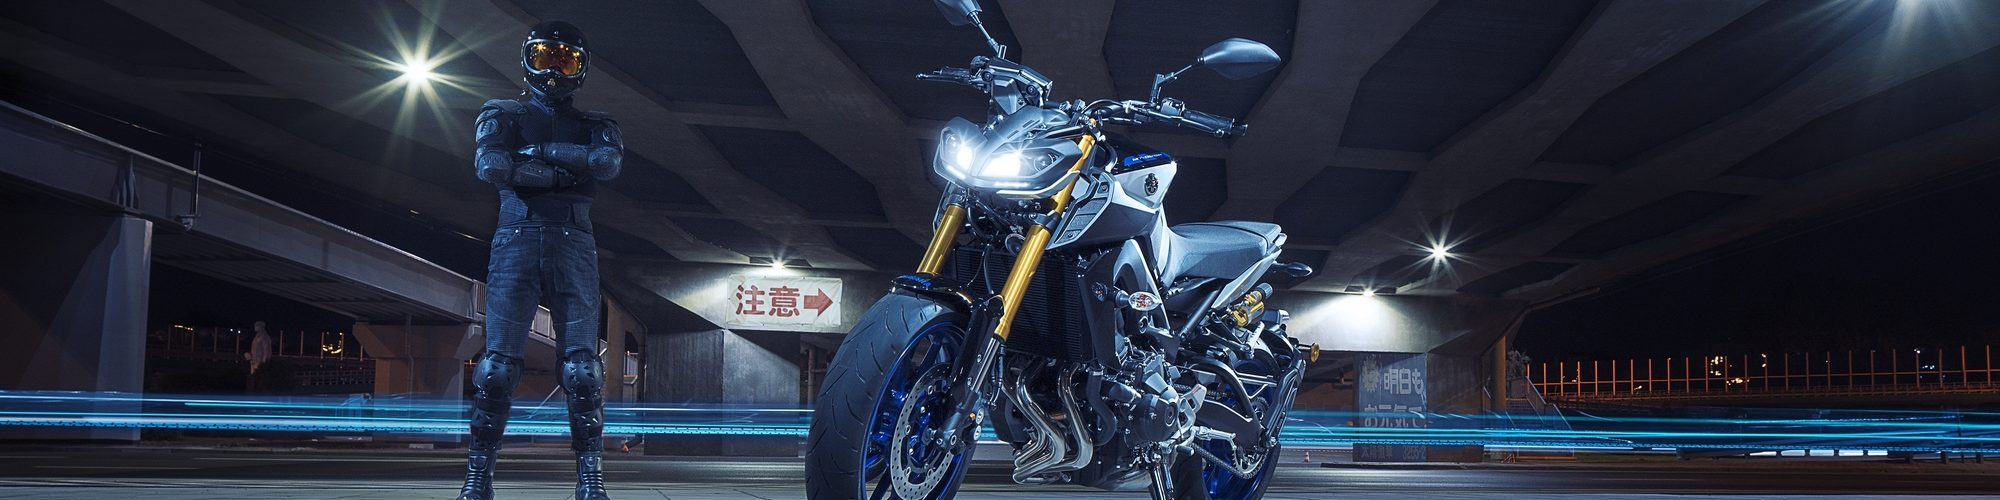 Yamaha MT-09 SP model 2018